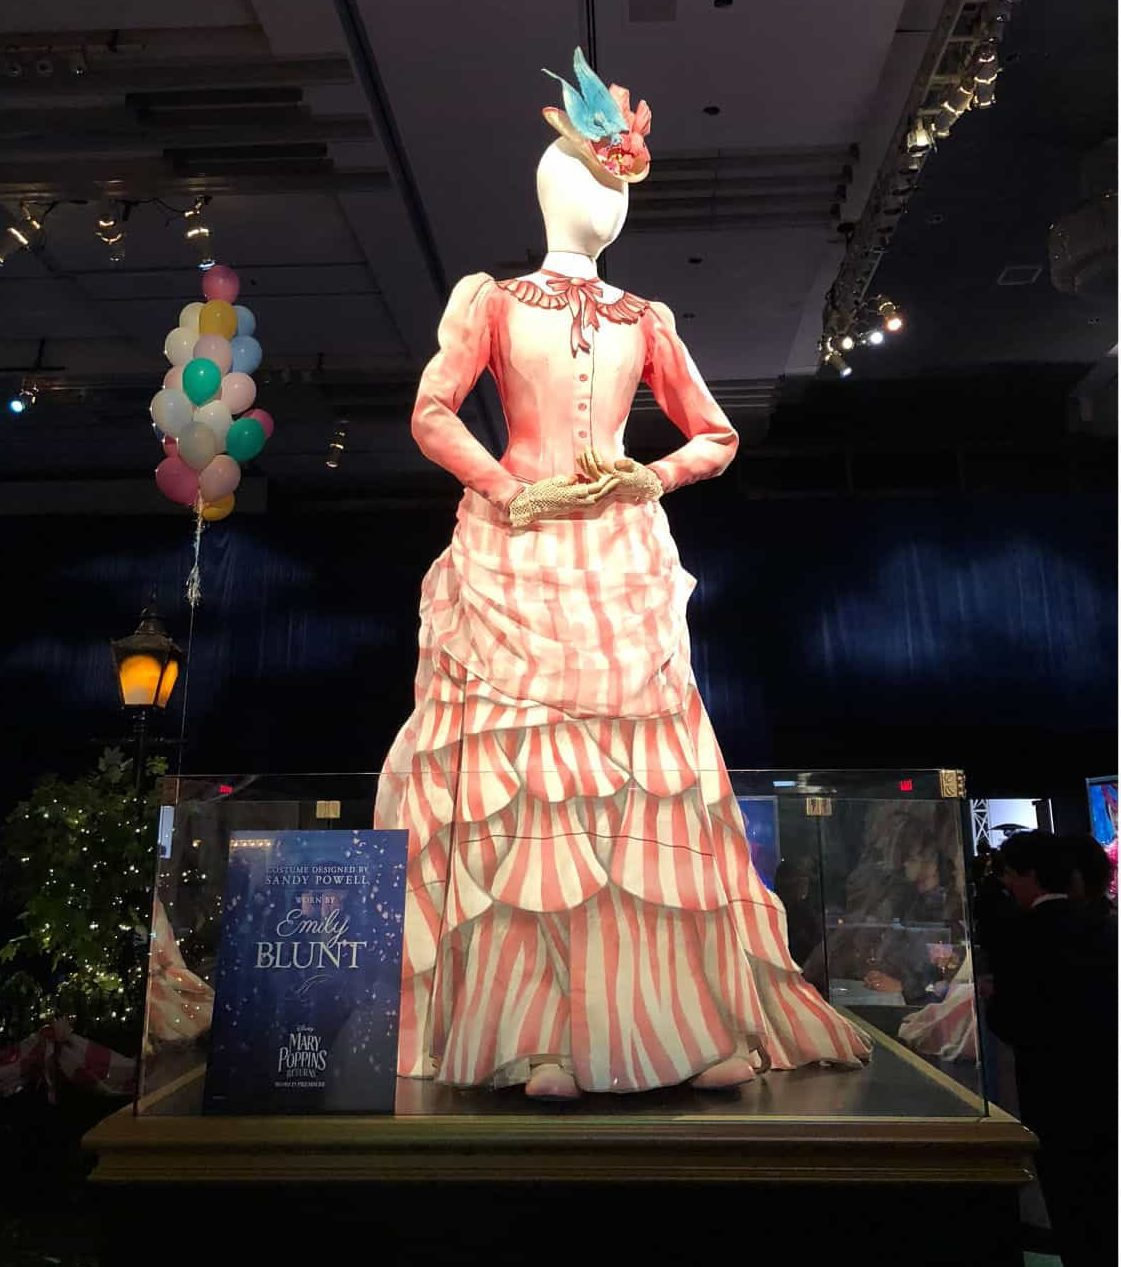 Mary Poppins Returns painted dress